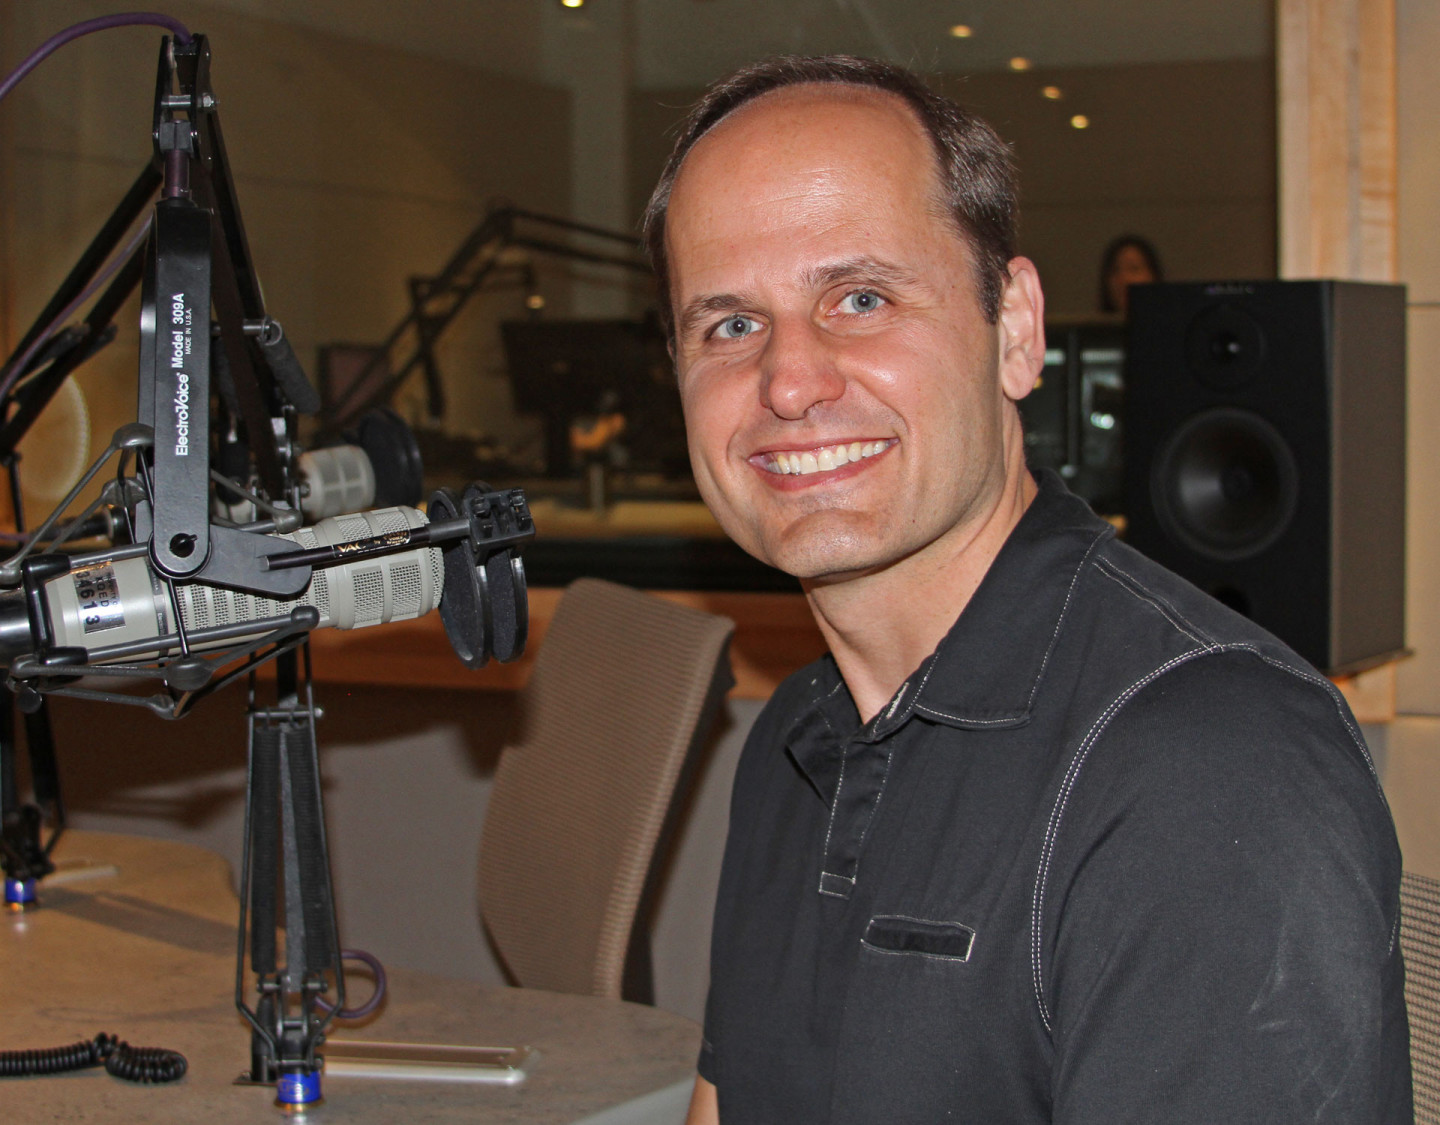 Laszlo Bock, Google's head of 'people operations,' answered questions about the company's hiring practices during a July 17 appearance on Forum.